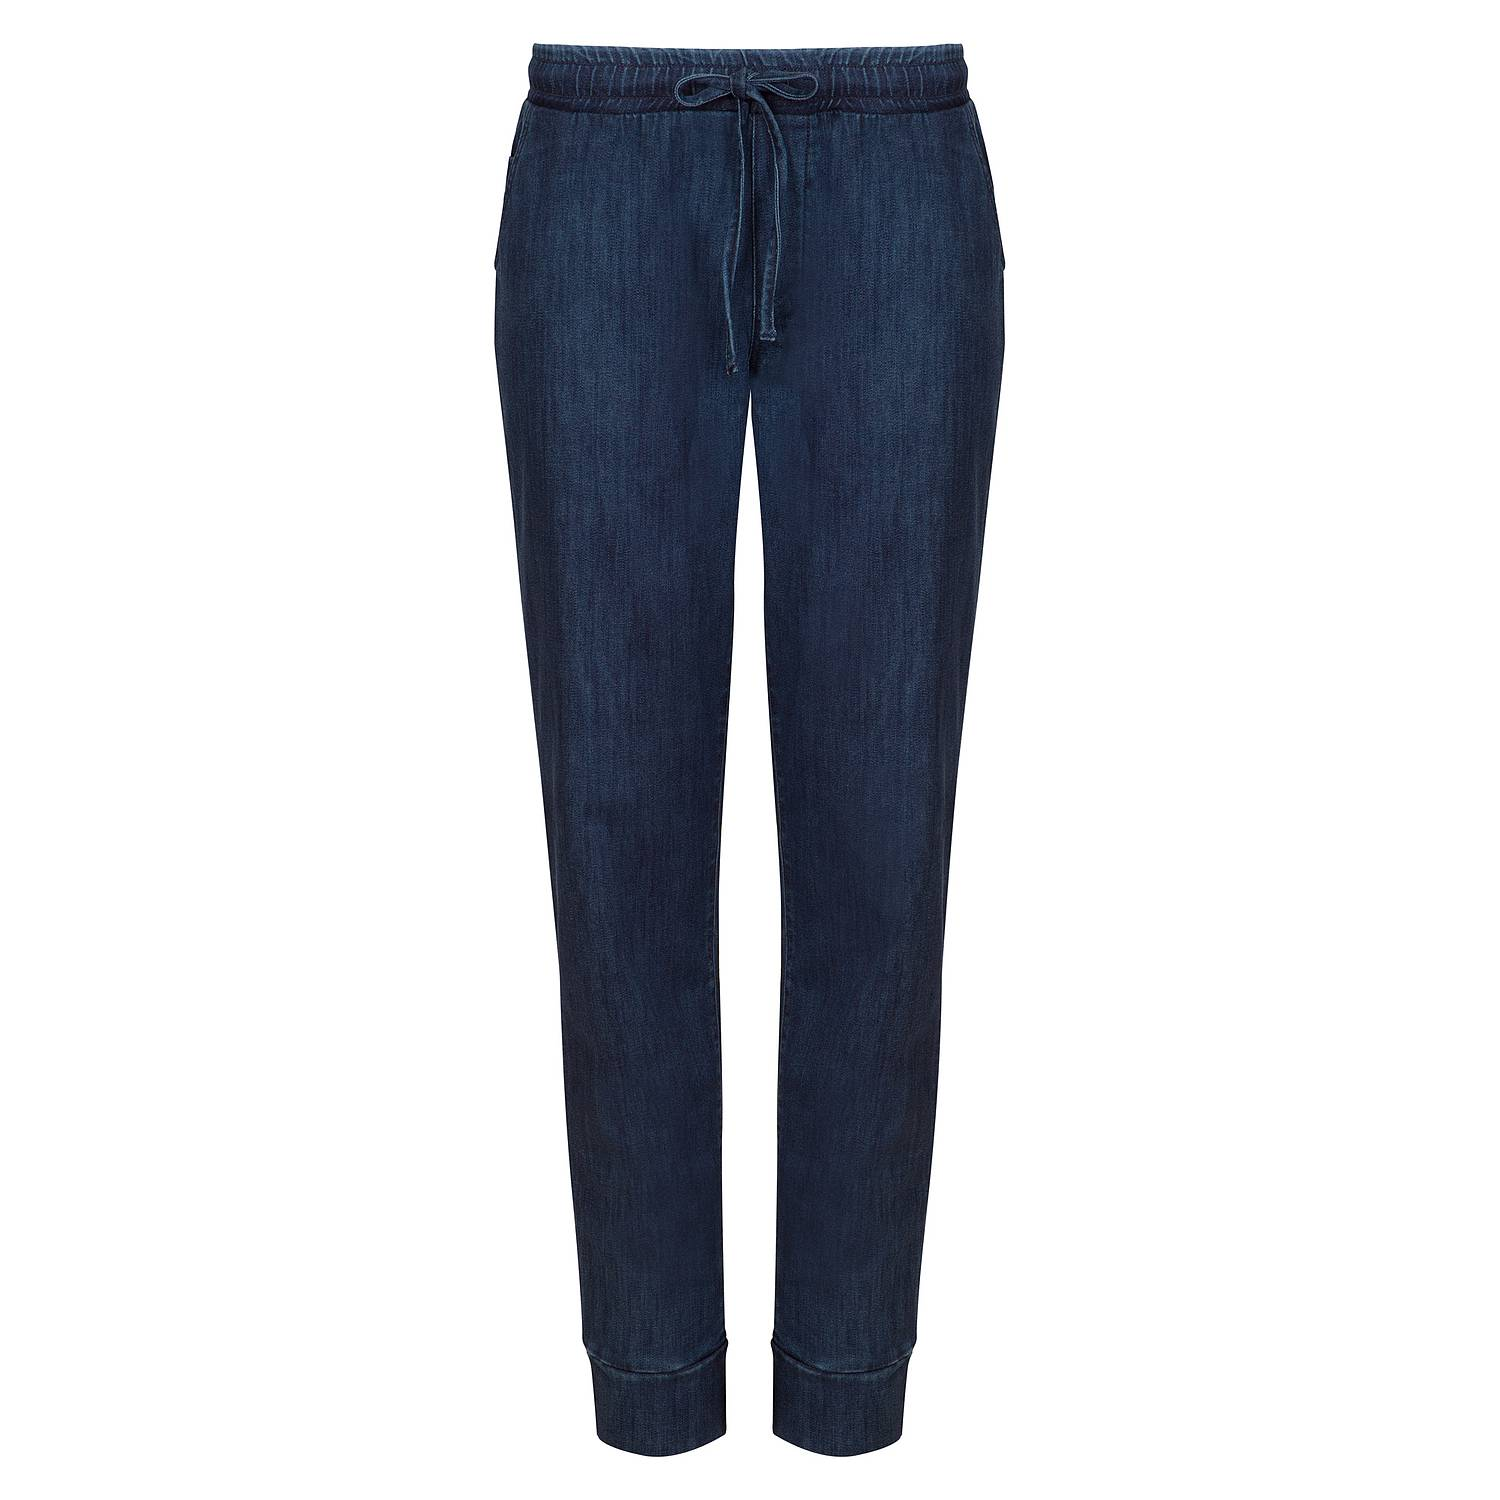 Jeans Romy stretch denim